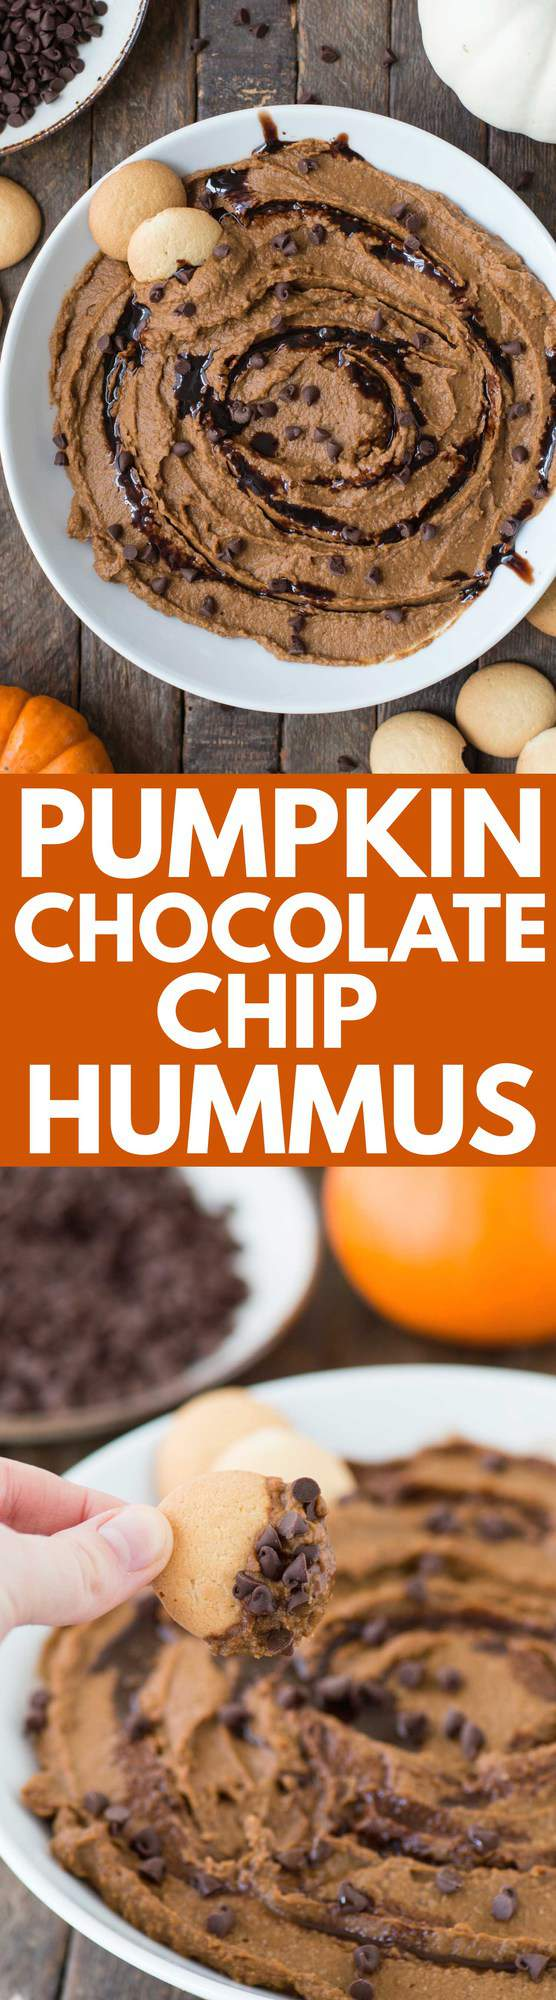 A healthier dessert hummus for the fall! Pumpkin chocolate chip hummus!